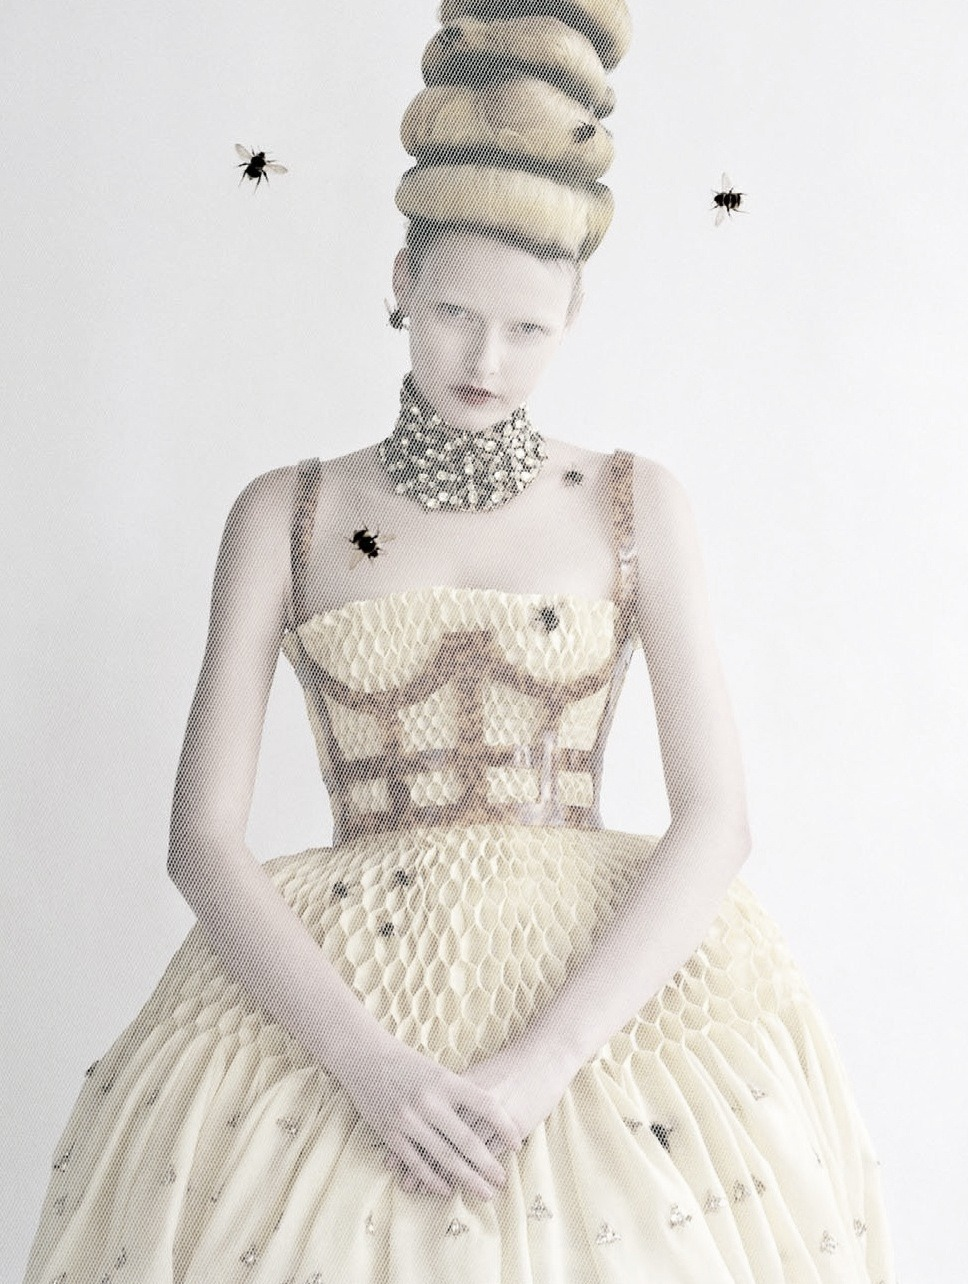 'High & Mighty' Elza Luijendijk by Tim Walker for Vogue US March 2013